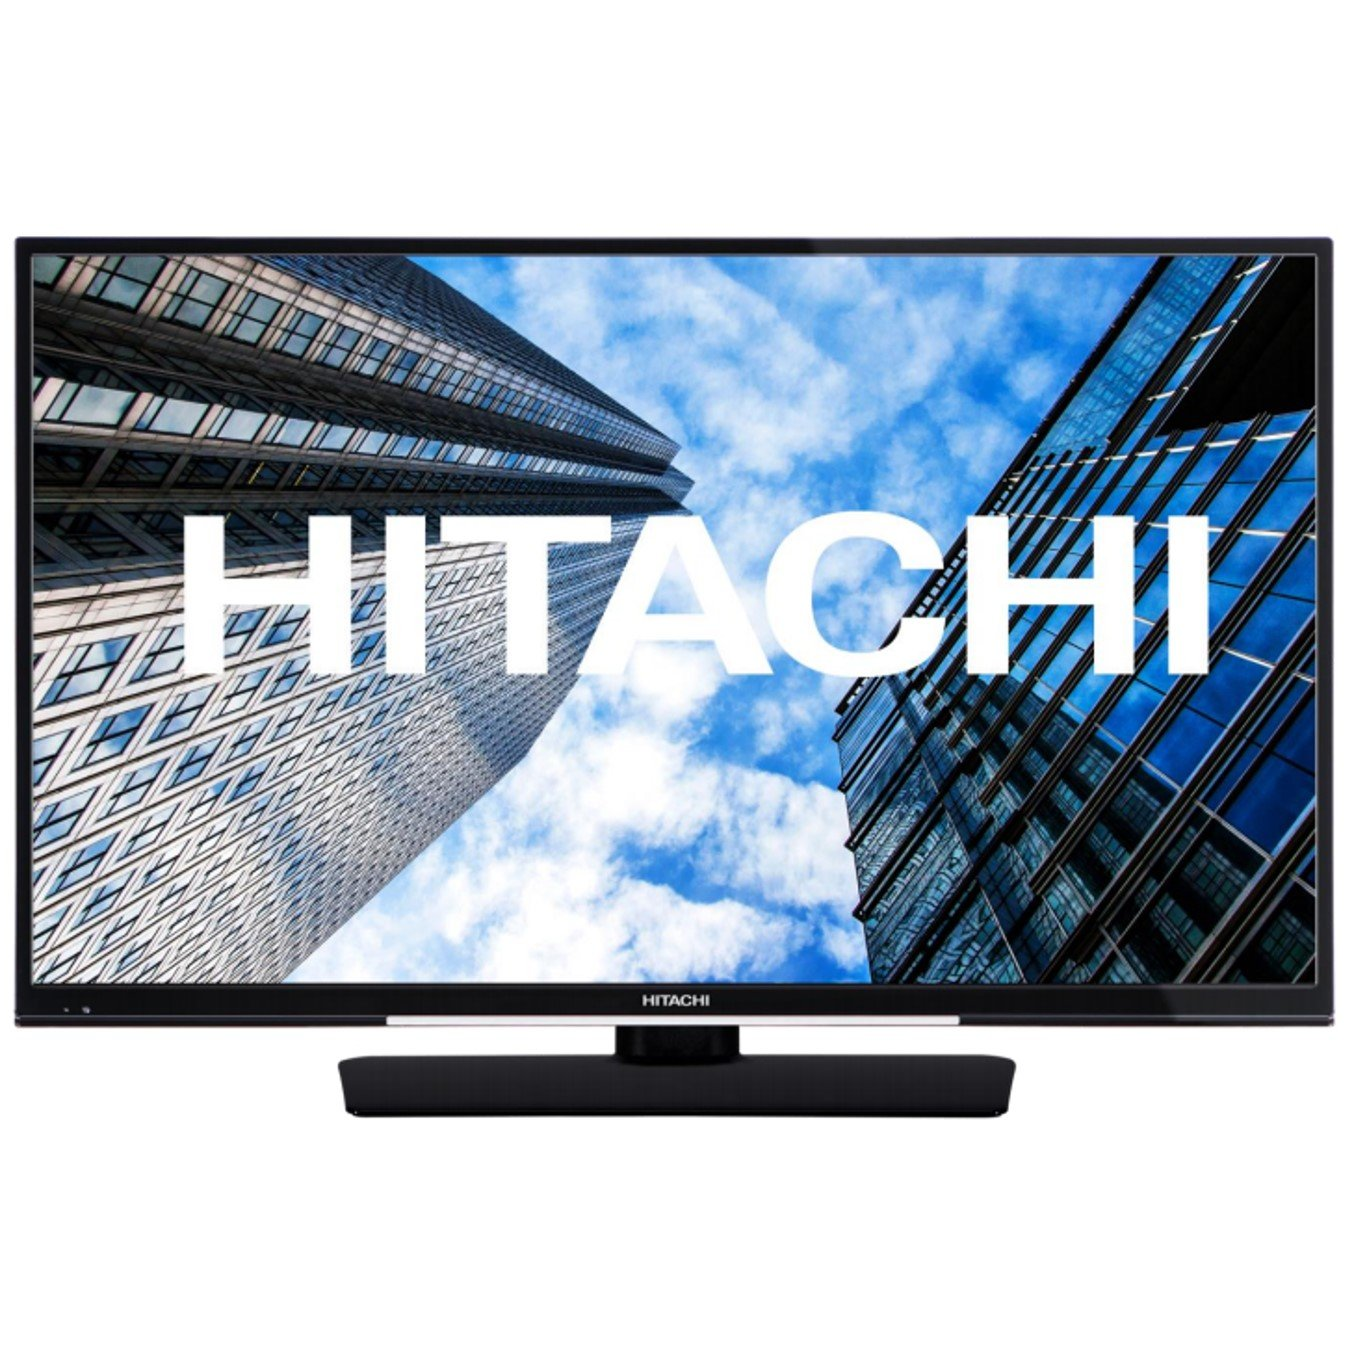 HITACHI 55HK4W64 TELEVISOR 55 LCD DIRECT LED UHD 4K 1200Hz SMART TV WIFI BLUETOOTH LAN HDMI USB REPRODUCTOR MULTIMEDIA: Amazon.es: Electrónica